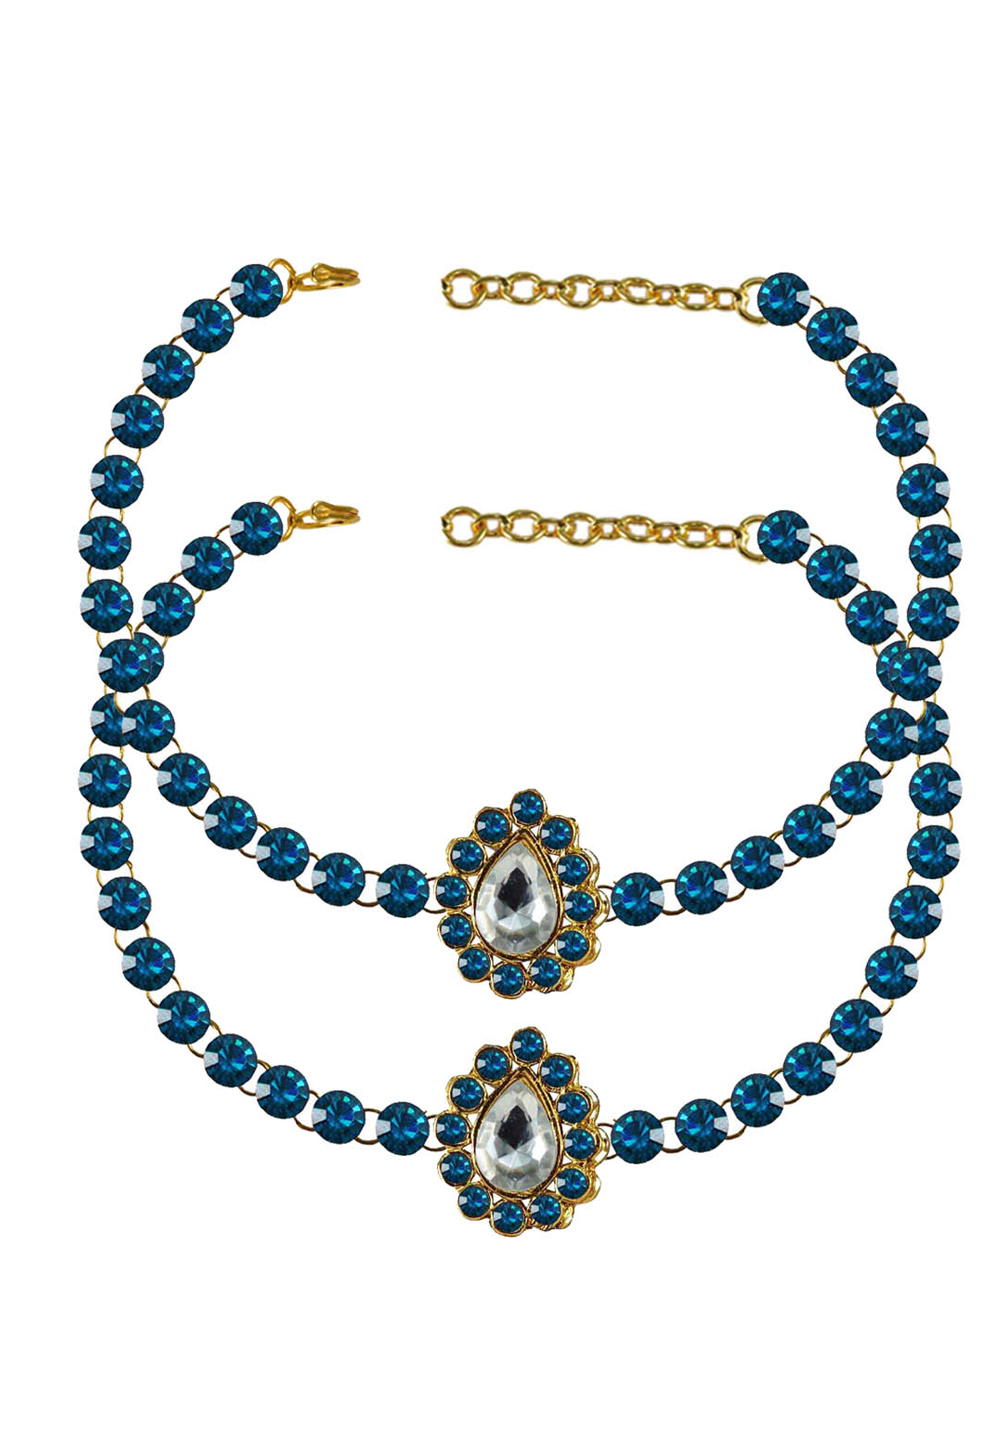 Blue Brass Gold Plated Anklets 171307